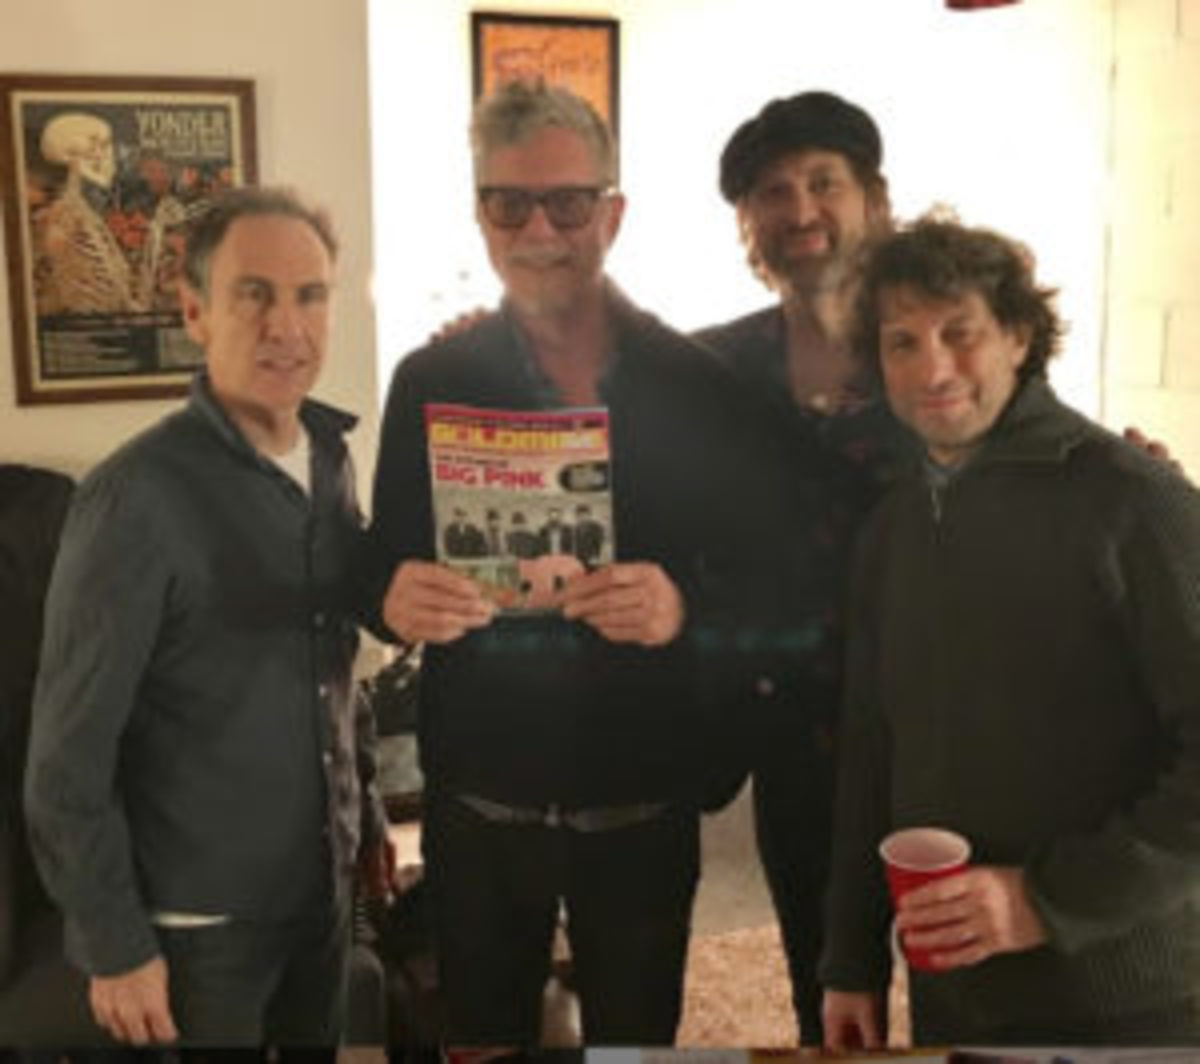 The Jayhawks backstage at The Warehouse in Fairfield, CT last night with a Sept 2018 copy of Goldmine Magazine (an issue which Gary Louris is interviewed by Ray Chelstowski).